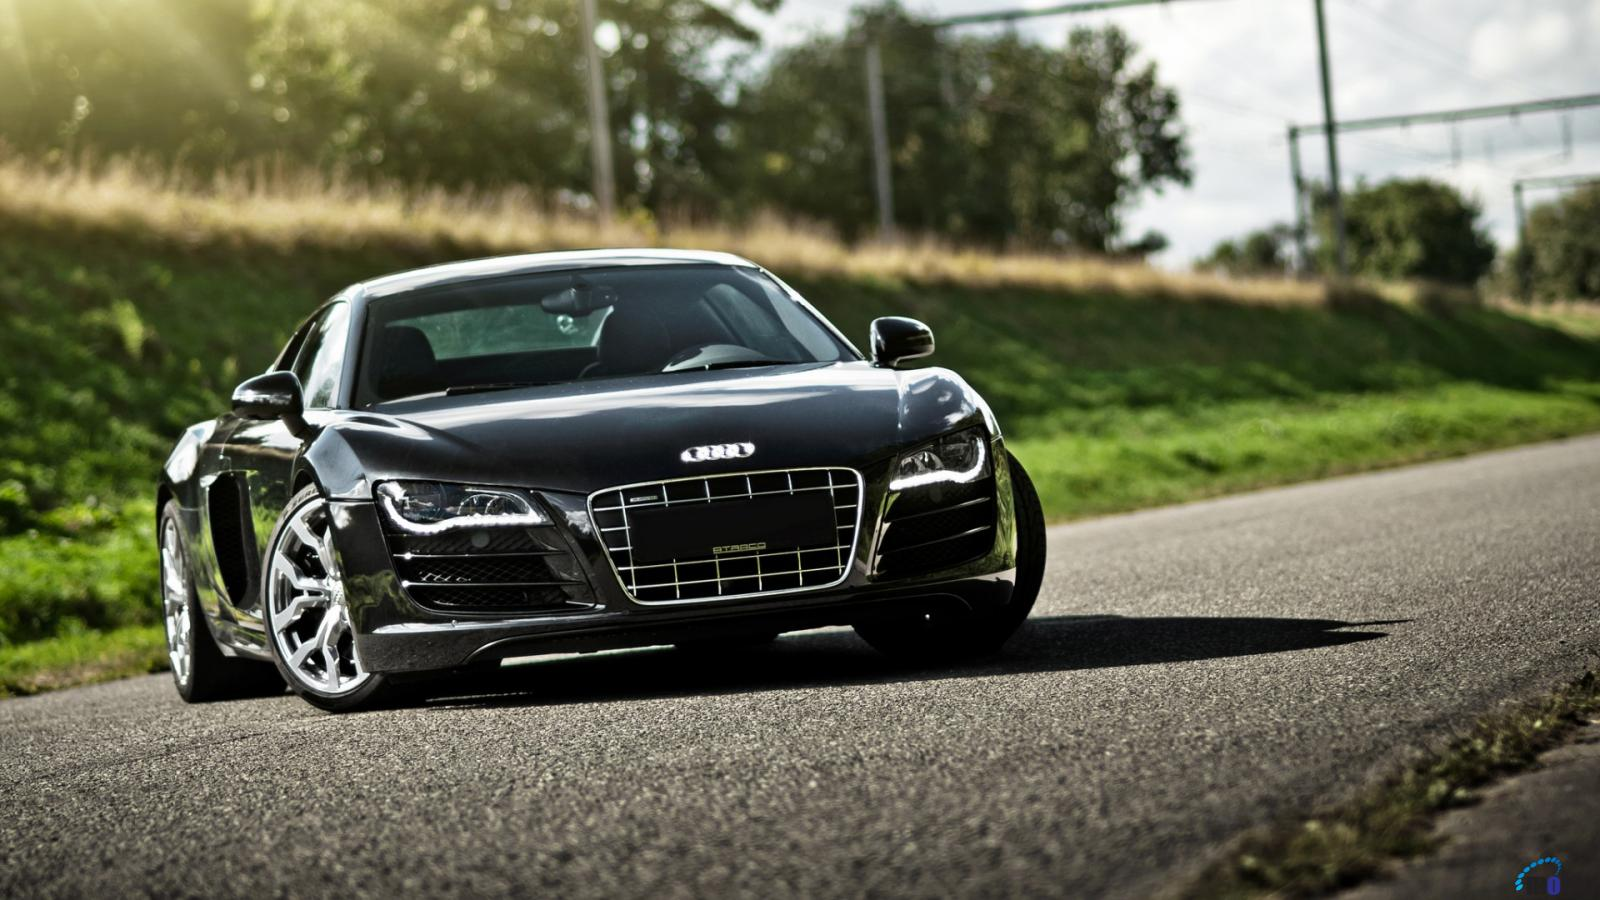 Desktop wallpapers Black Audi R8 V10.